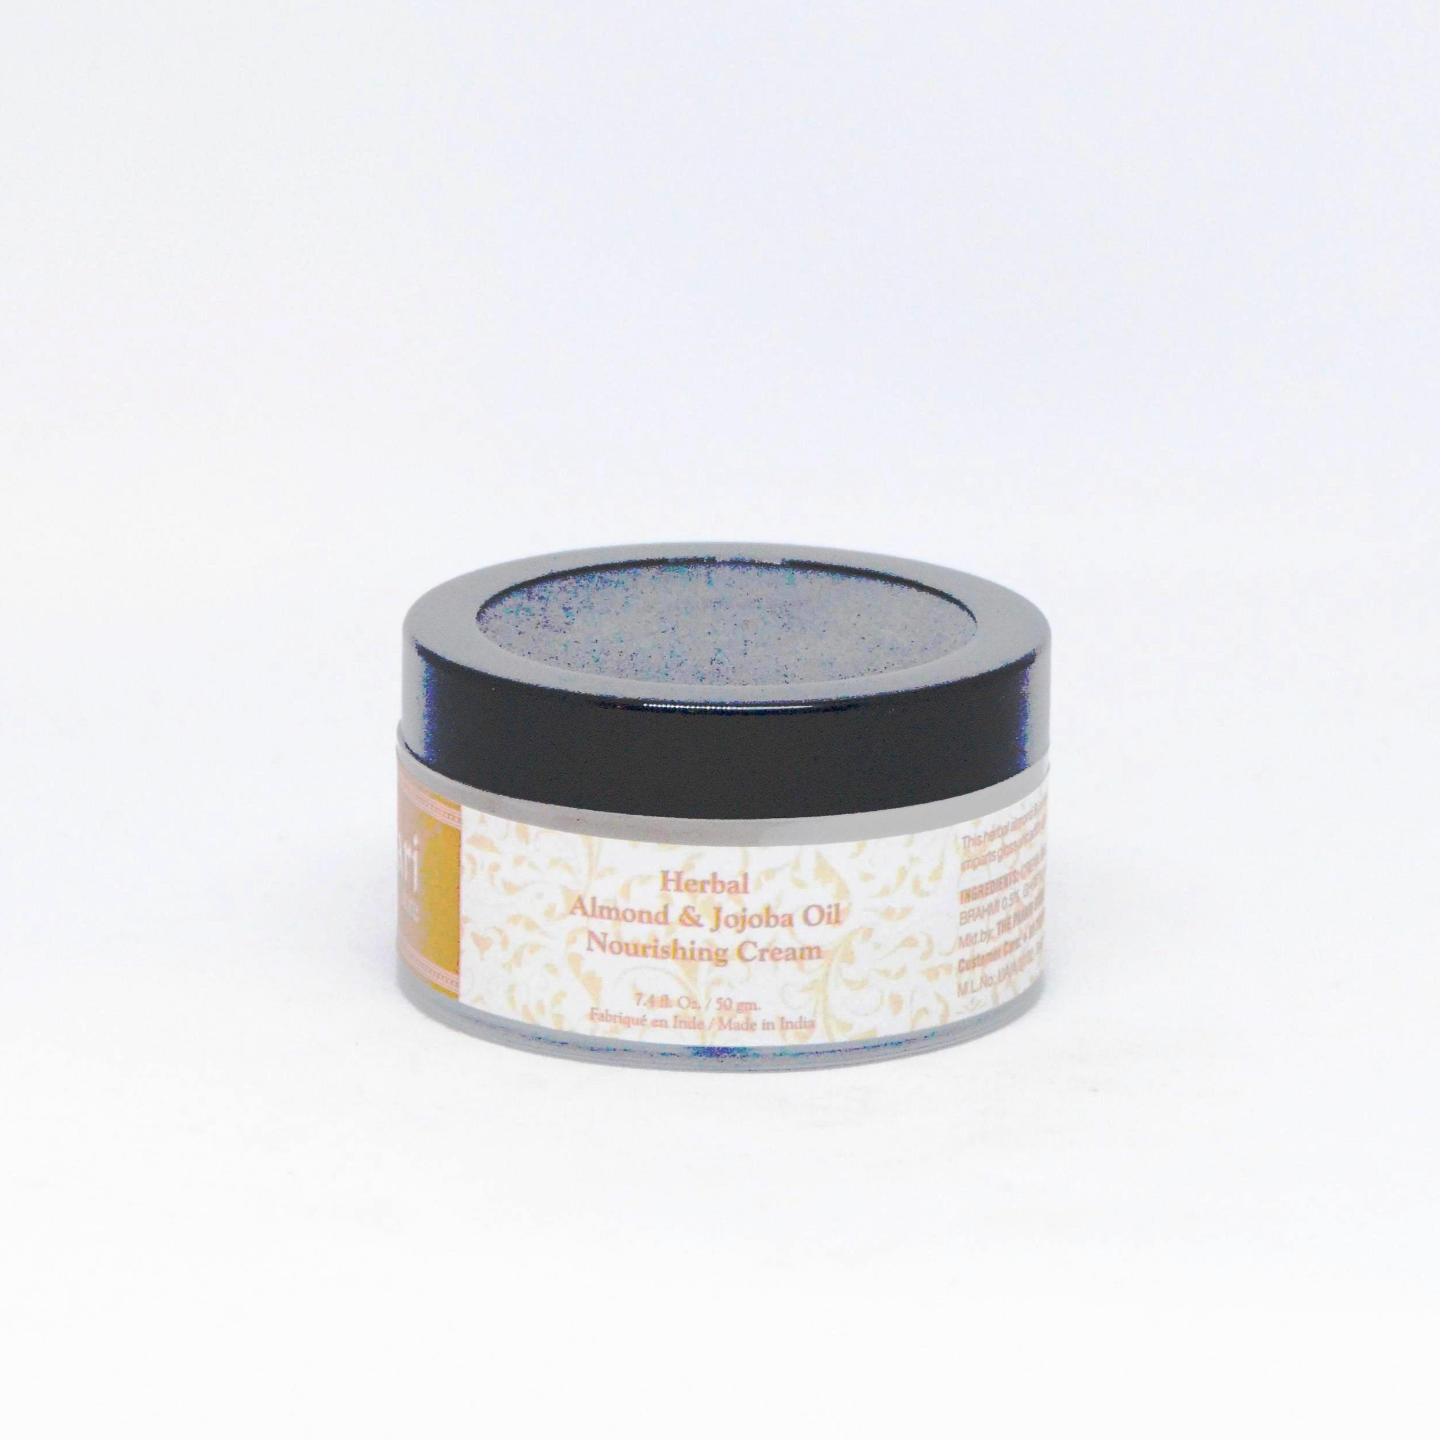 Herbal Almond & Jojoba Oil Nourishing Cream 50g